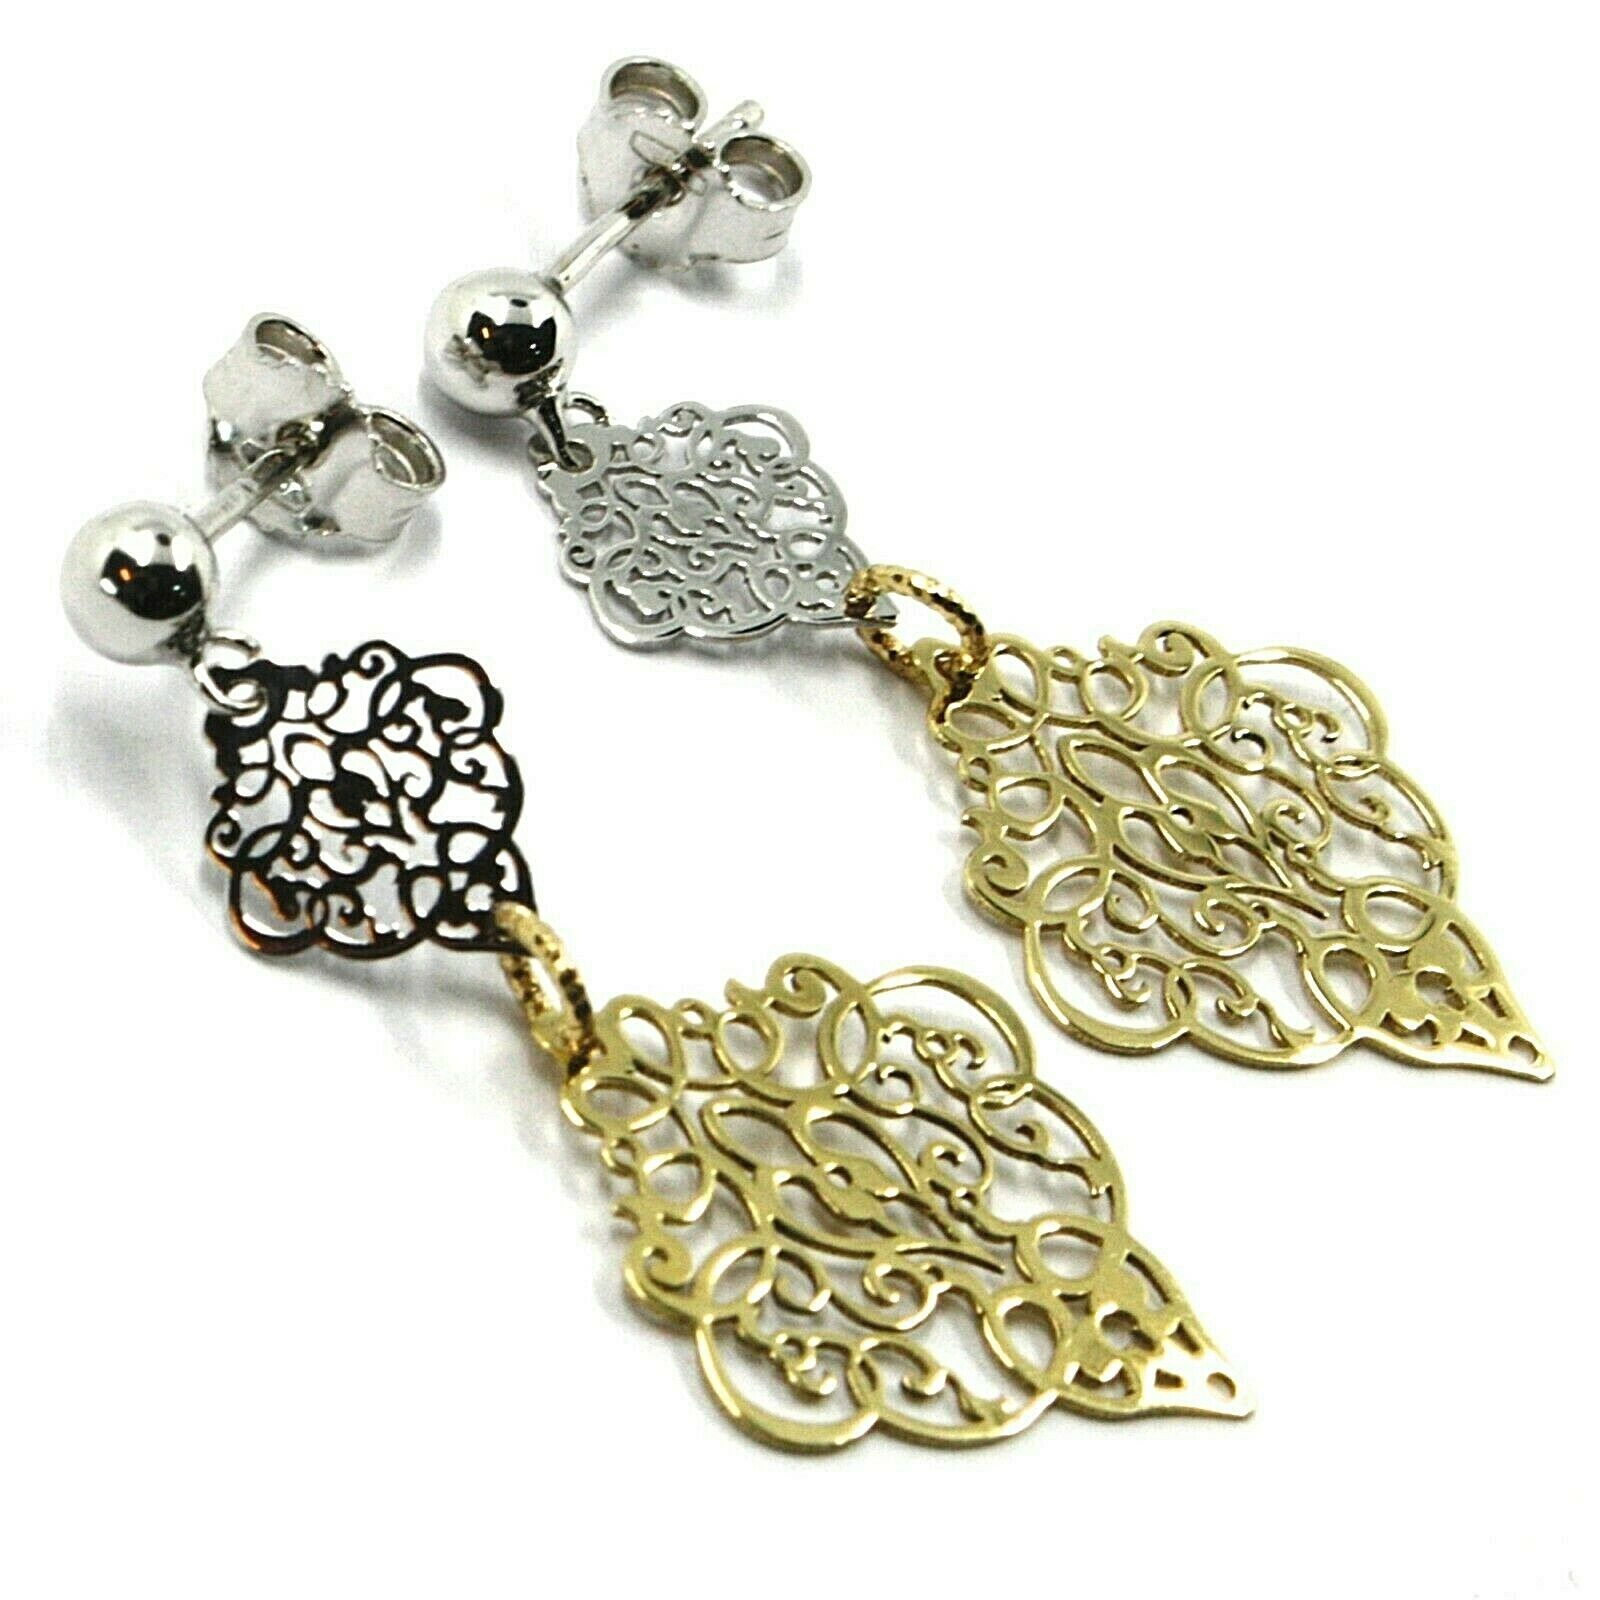 18K YELLOW WHITE GOLD PENDANT EARRINGS, DOUBLE WORKED RHOMBUS, MADE IN ITALY